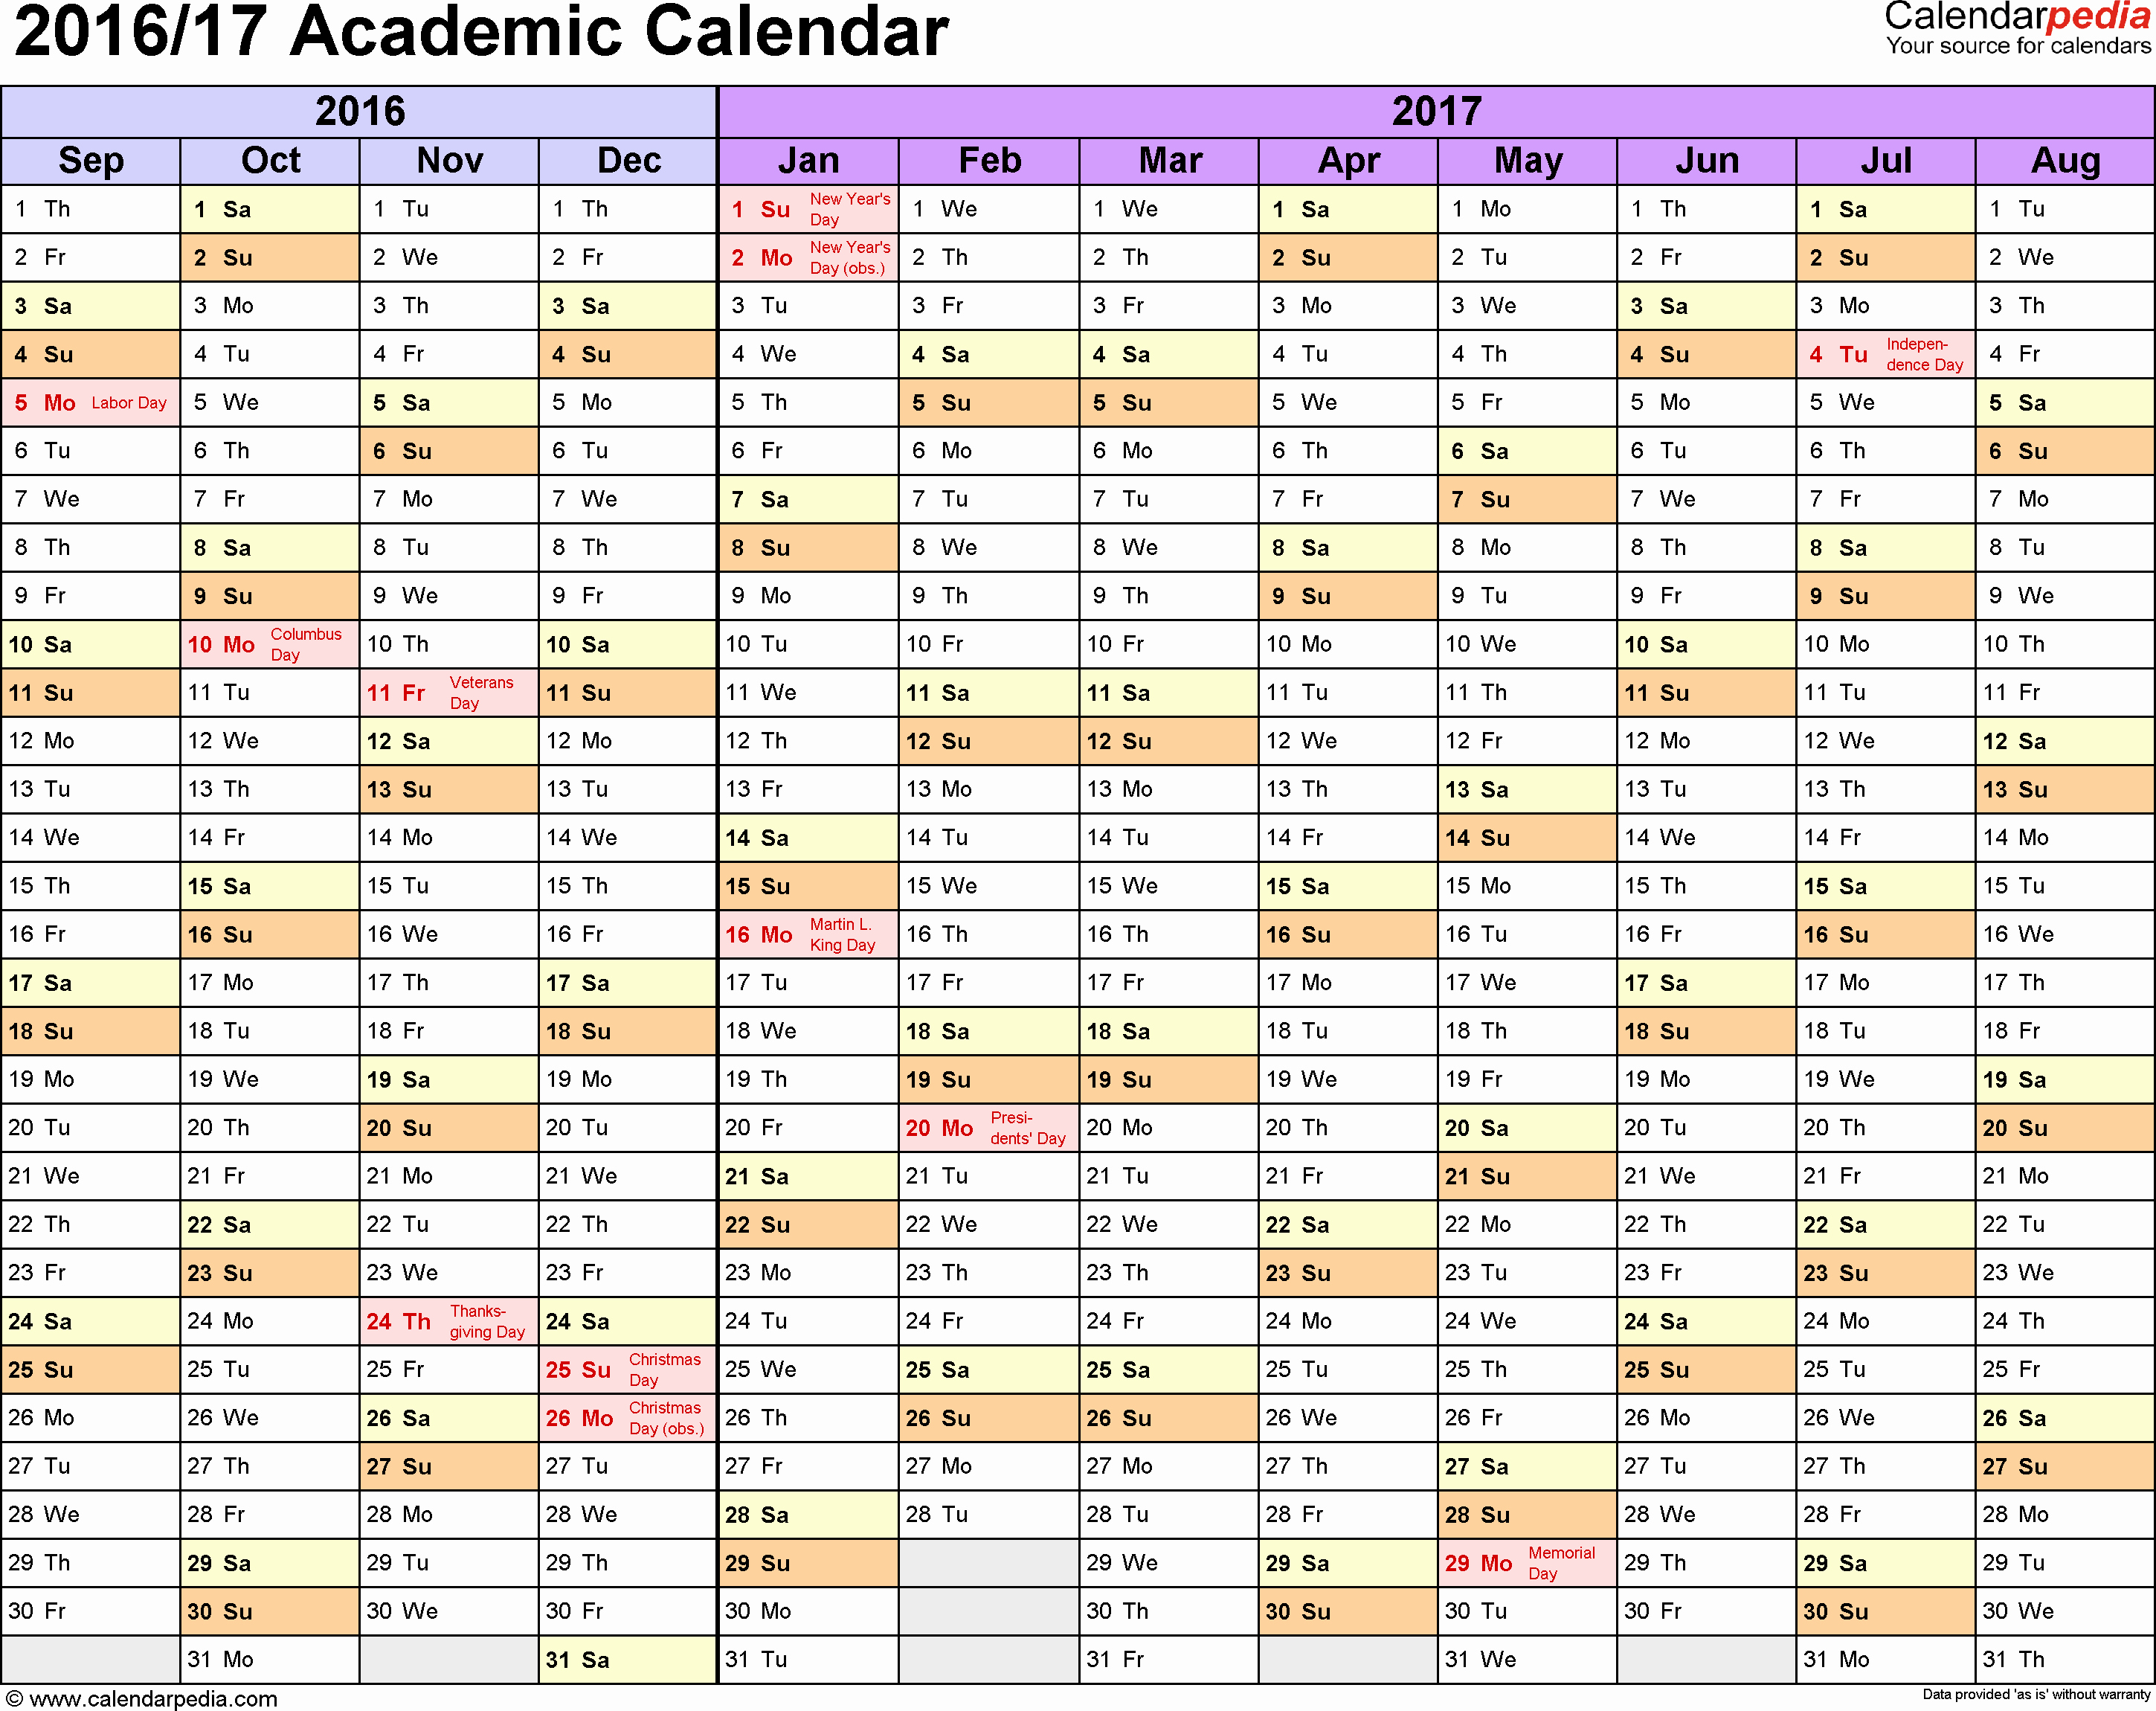 Monthly Calendar 2016-17 Awesome Academic Calendars 2016 2017 Free Printable Excel Templates